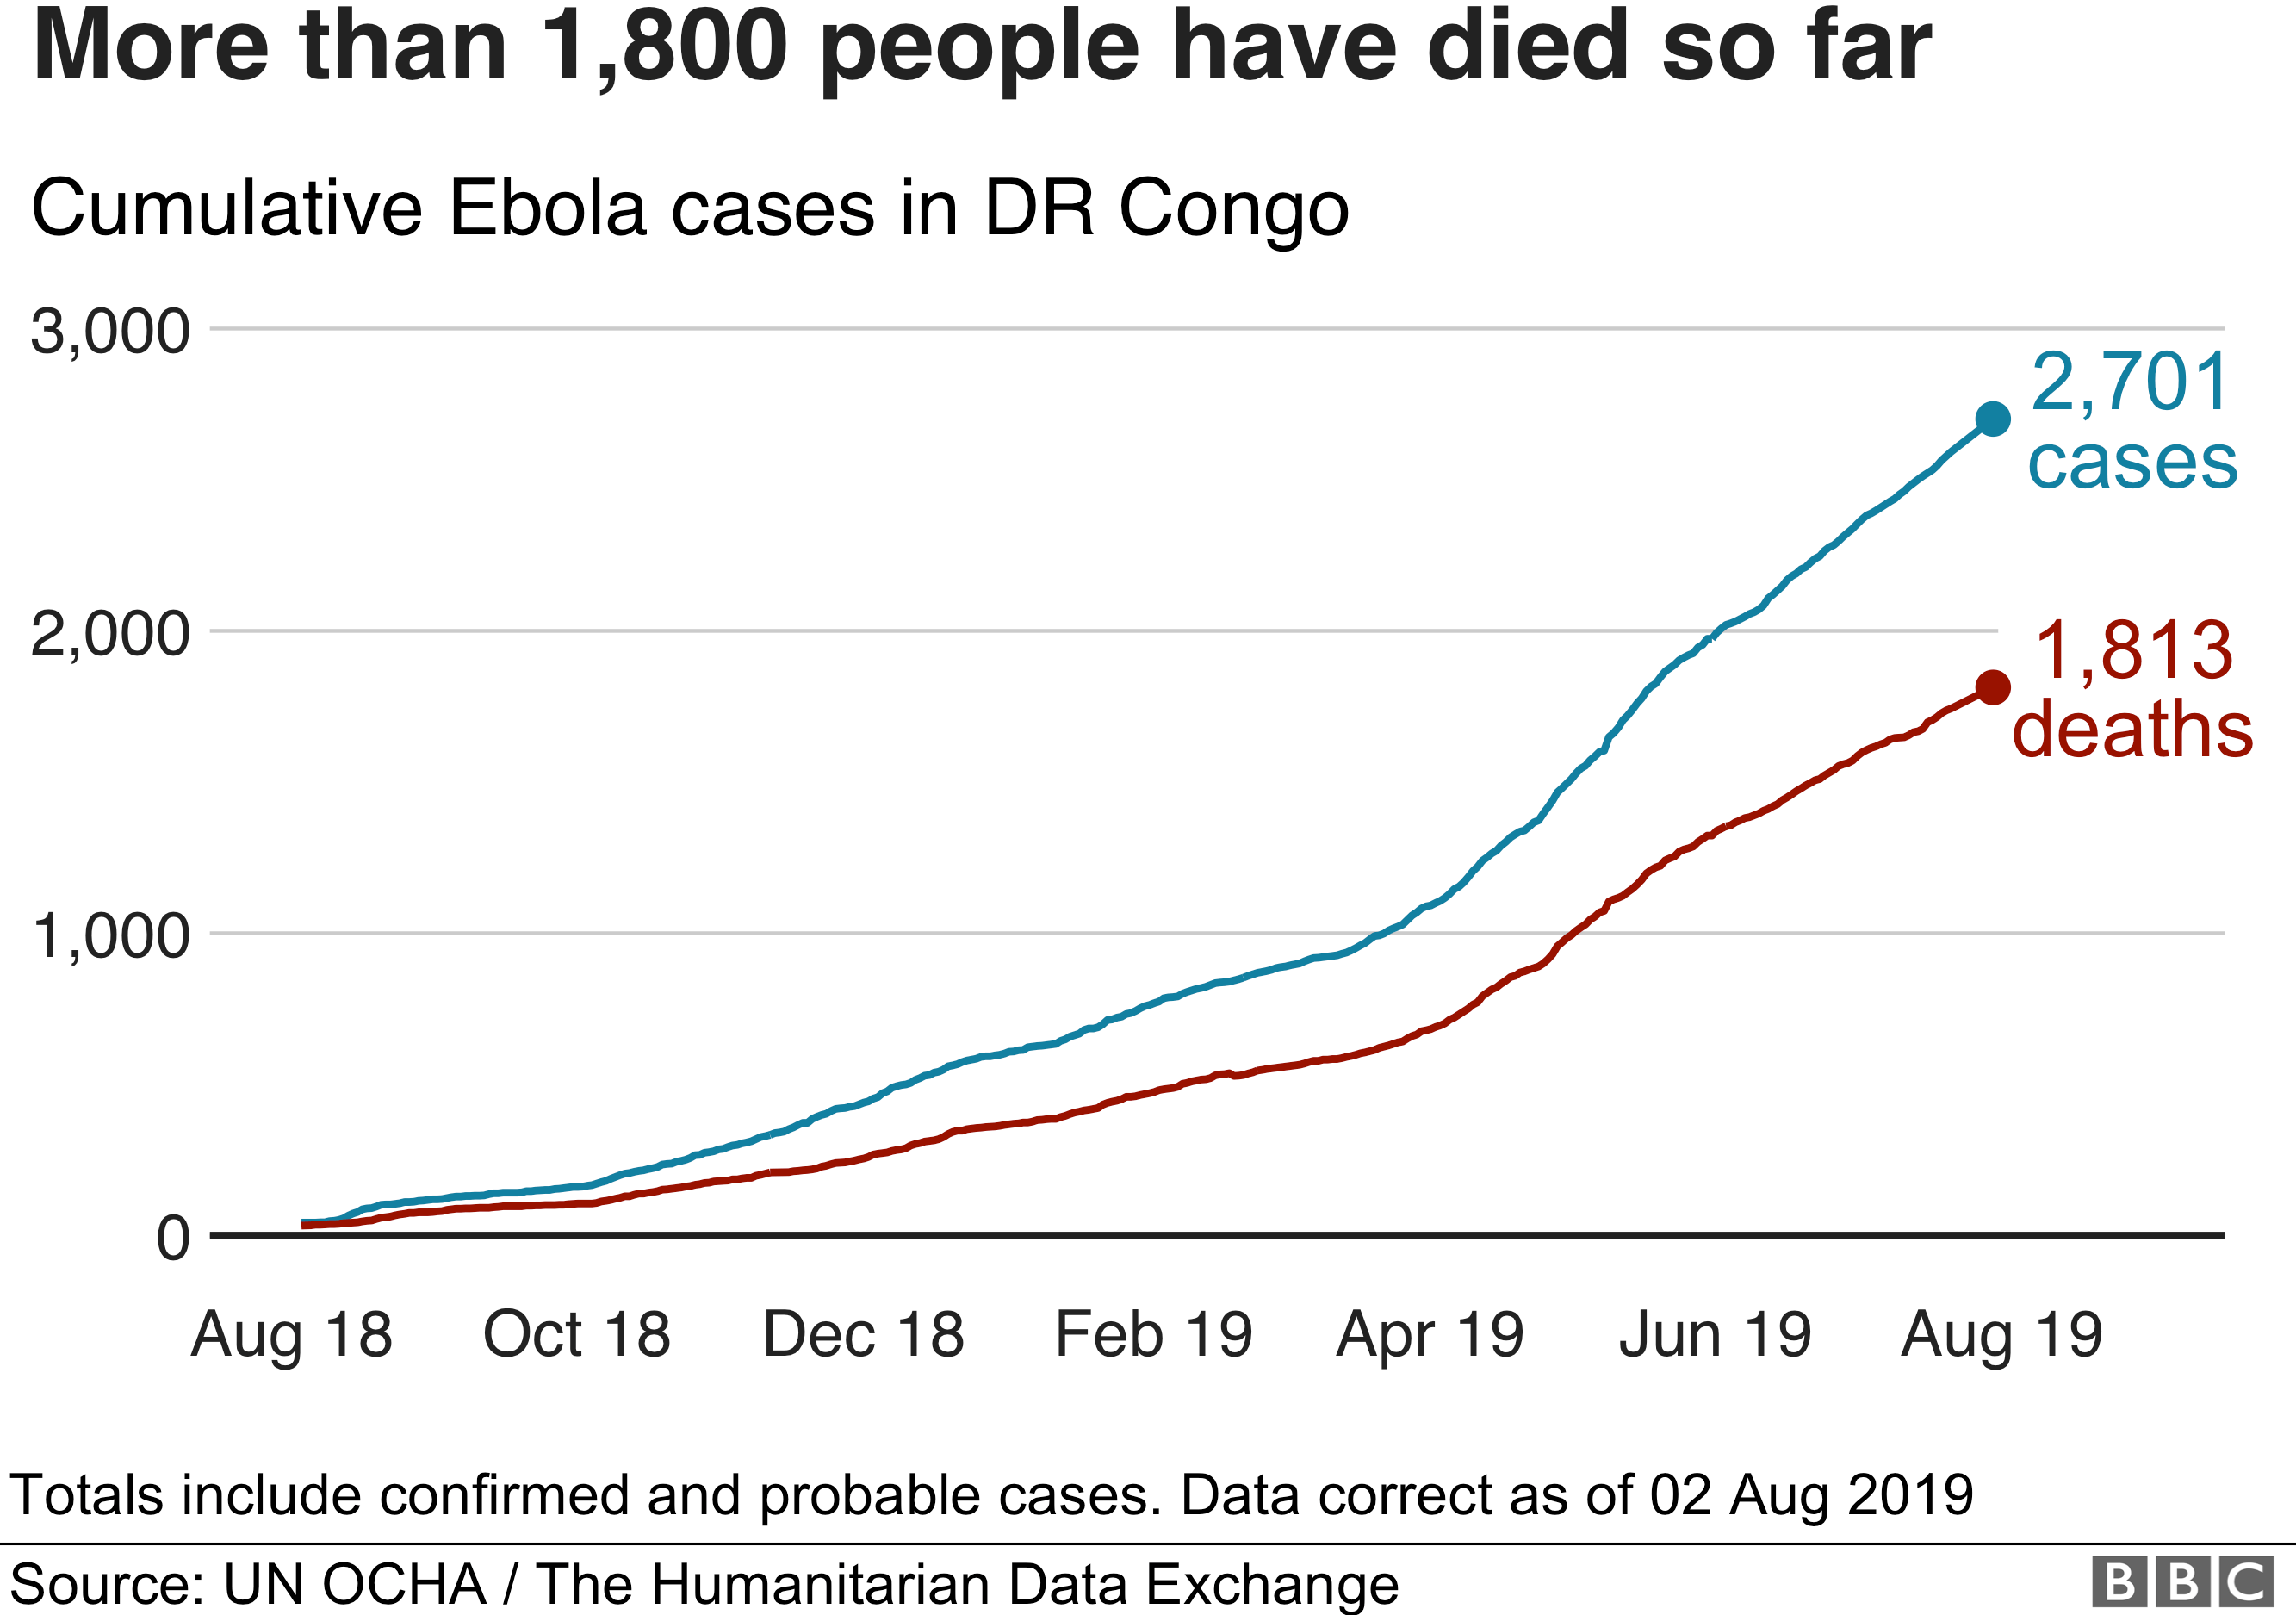 Ebola outbreak in five graphics - BBC News